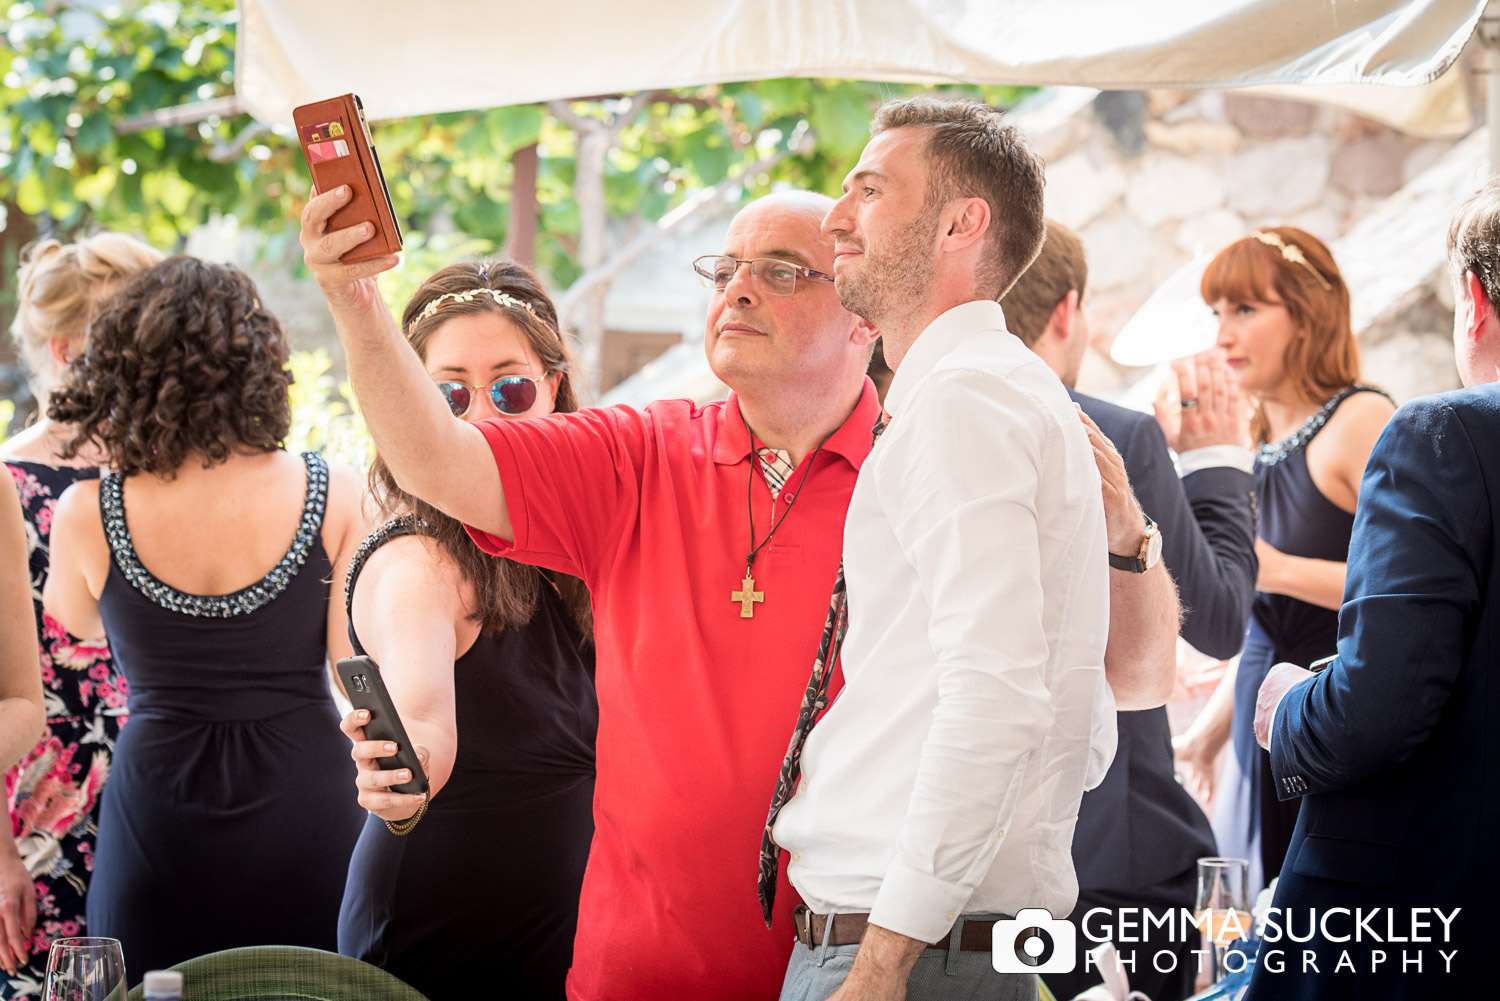 priest taking a selfie with wedding guests